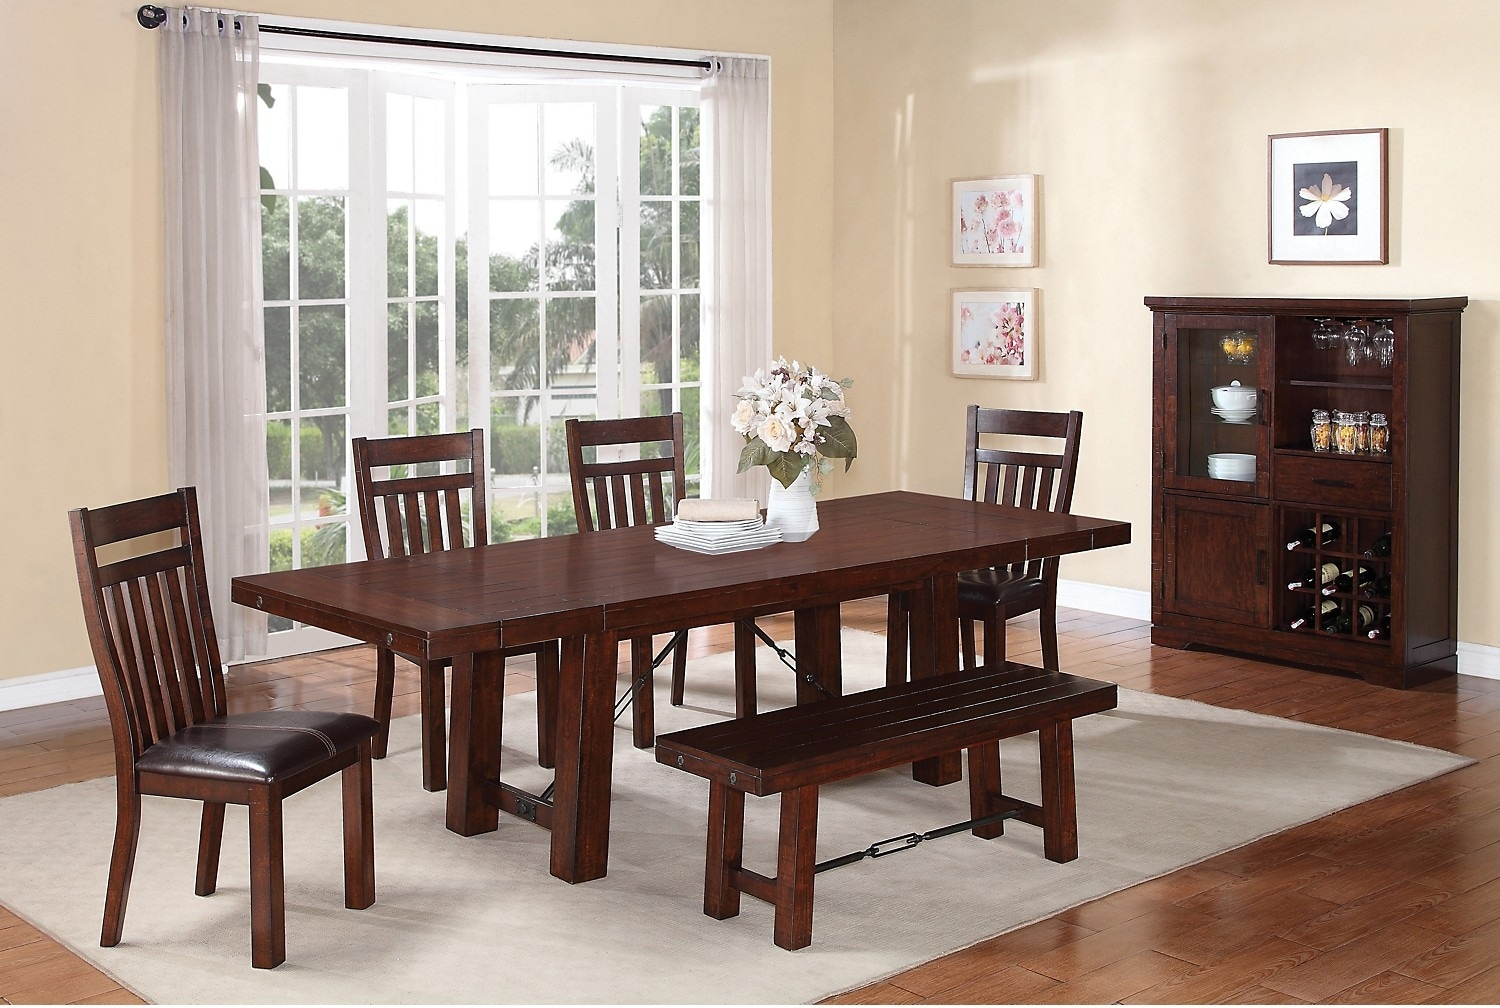 Dining Room Furniture - Sonoma 7-Piece Dining Package with Bench